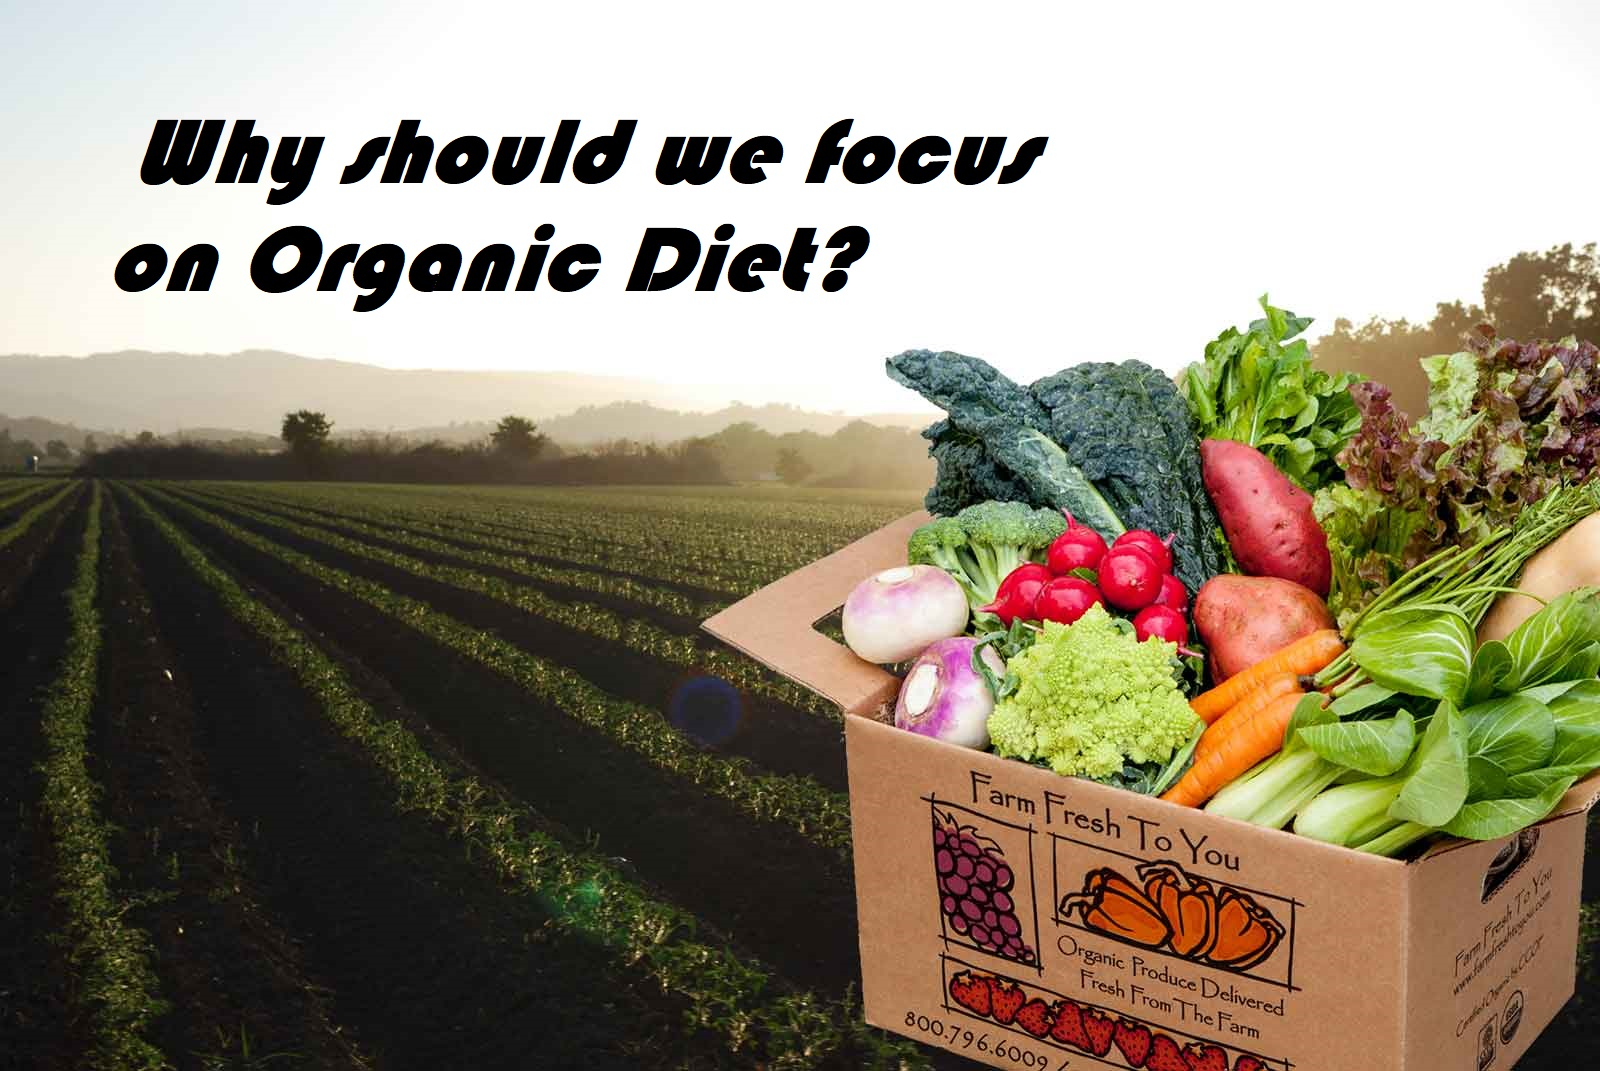 Why should we focus on Organic Diet?